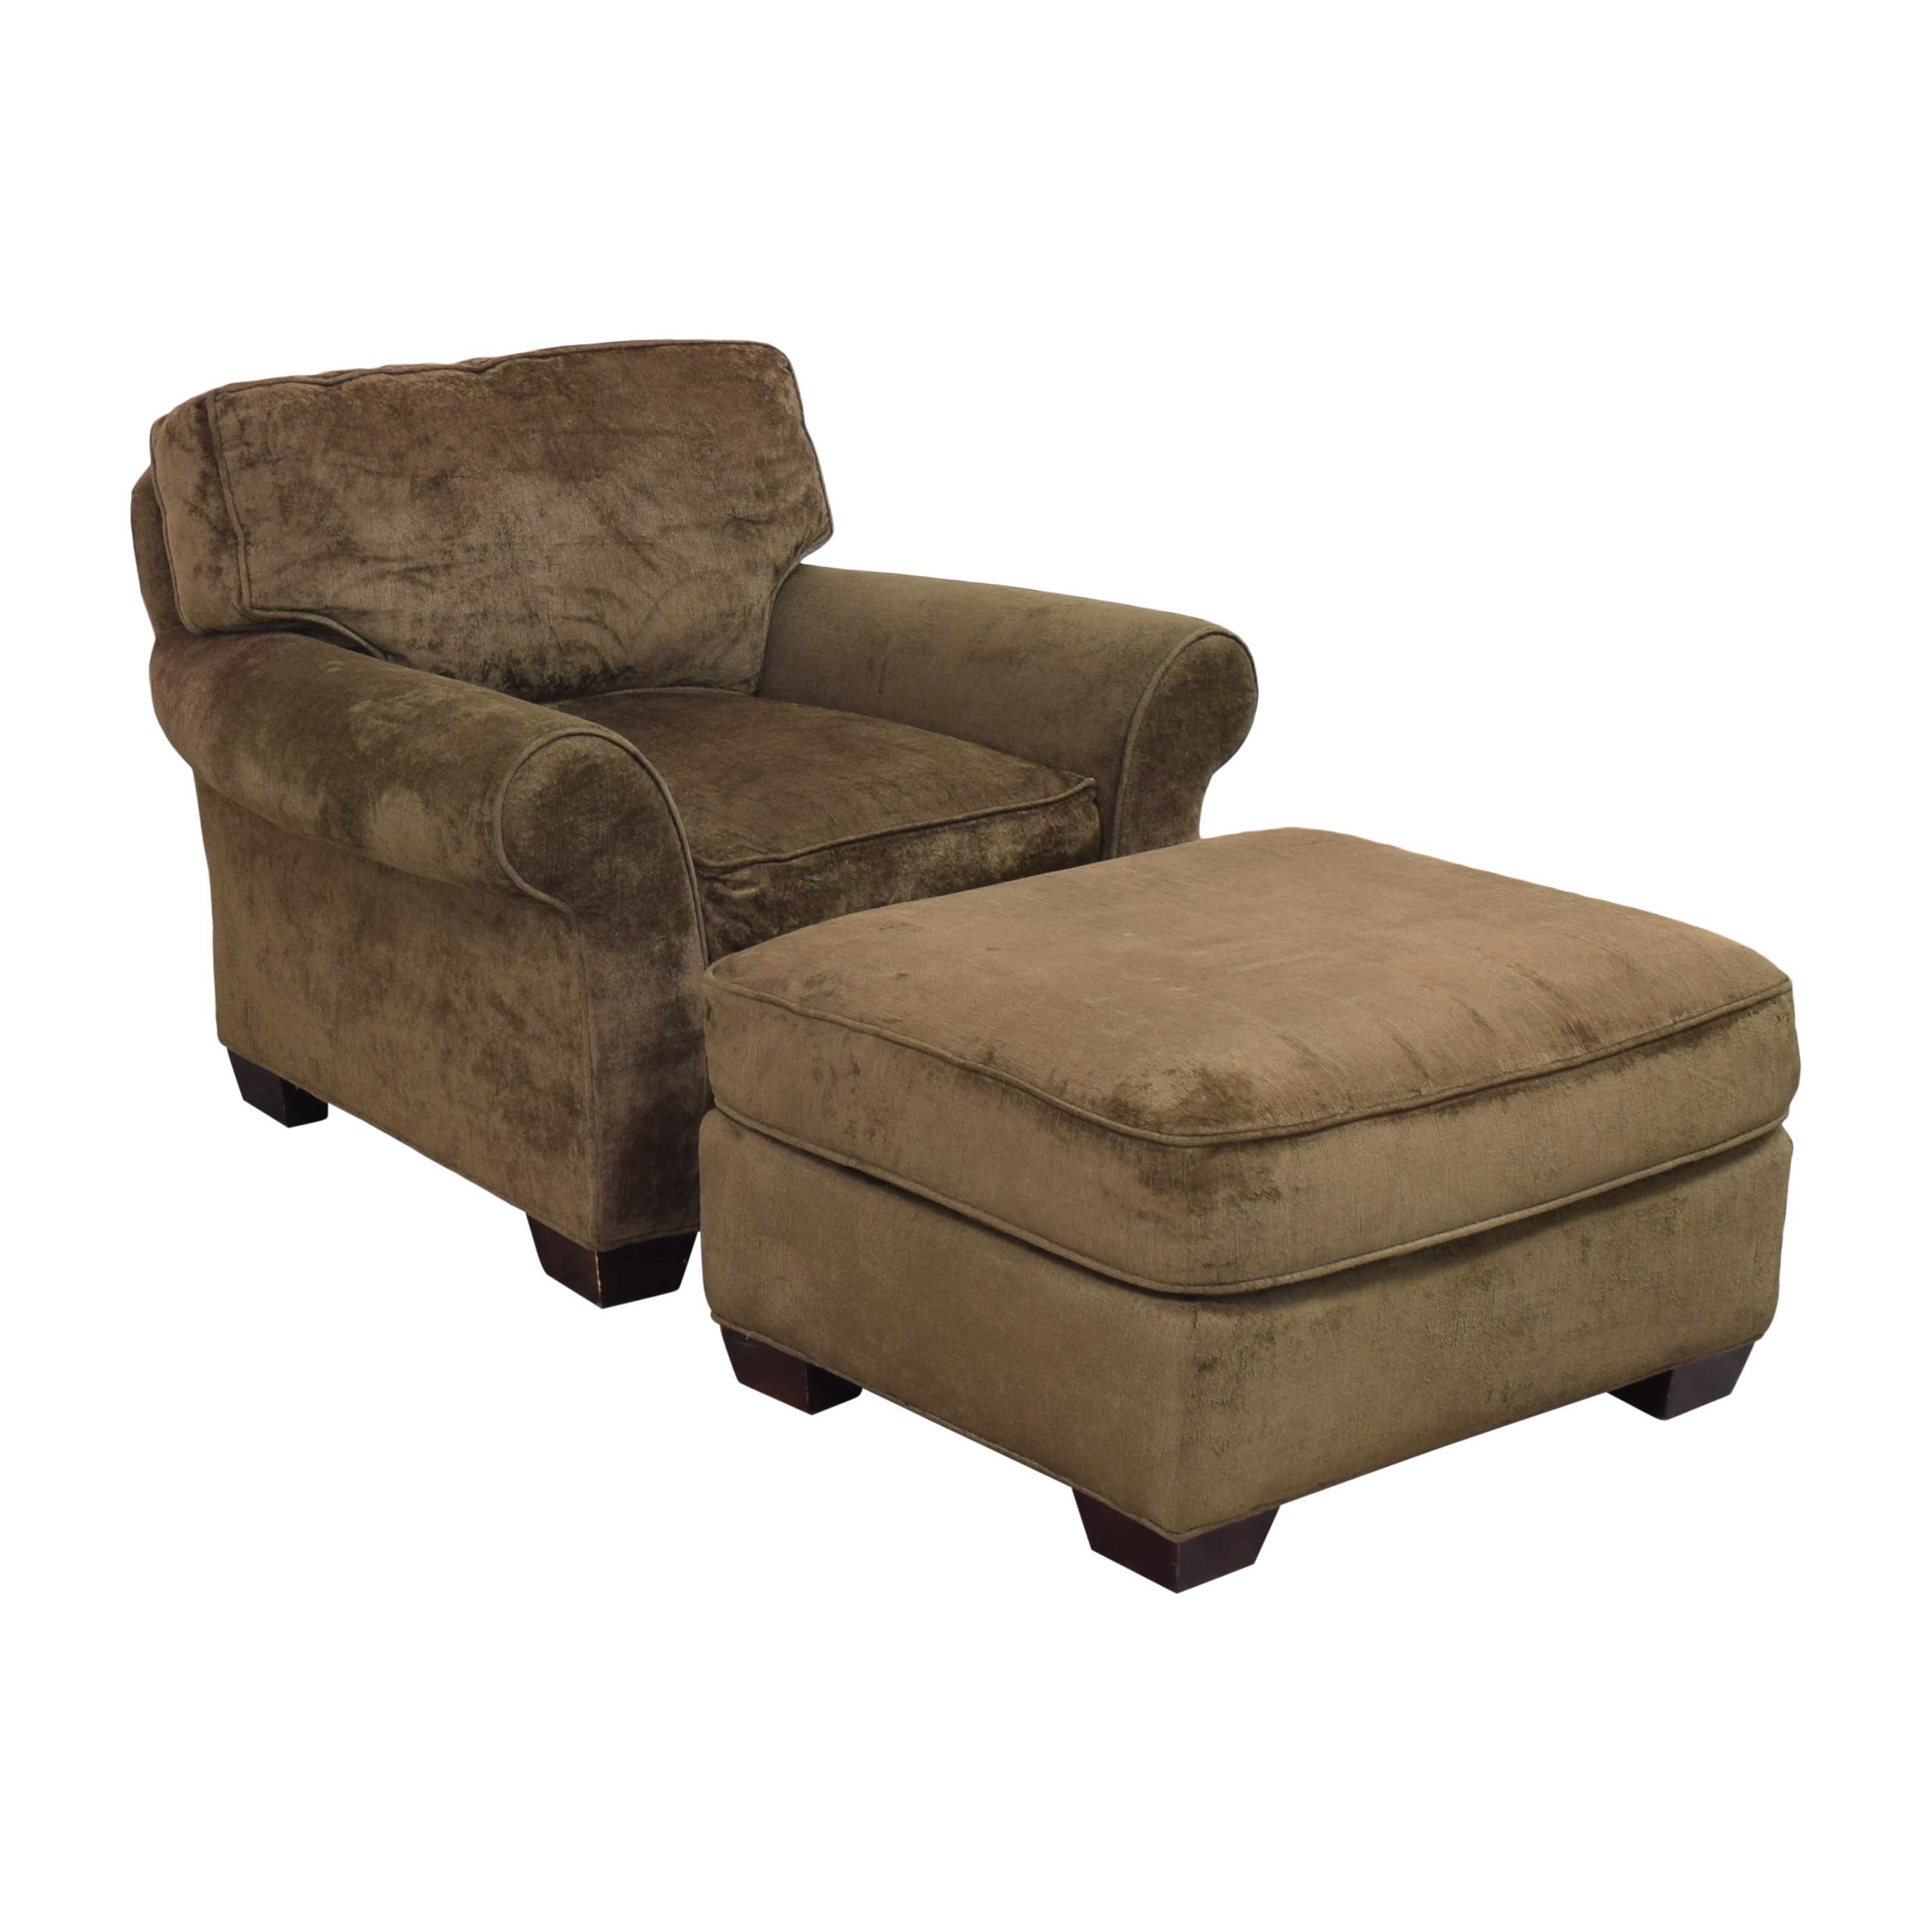 Crate & Barrel Crate & Barrel Arm Chair with Ottoman pa